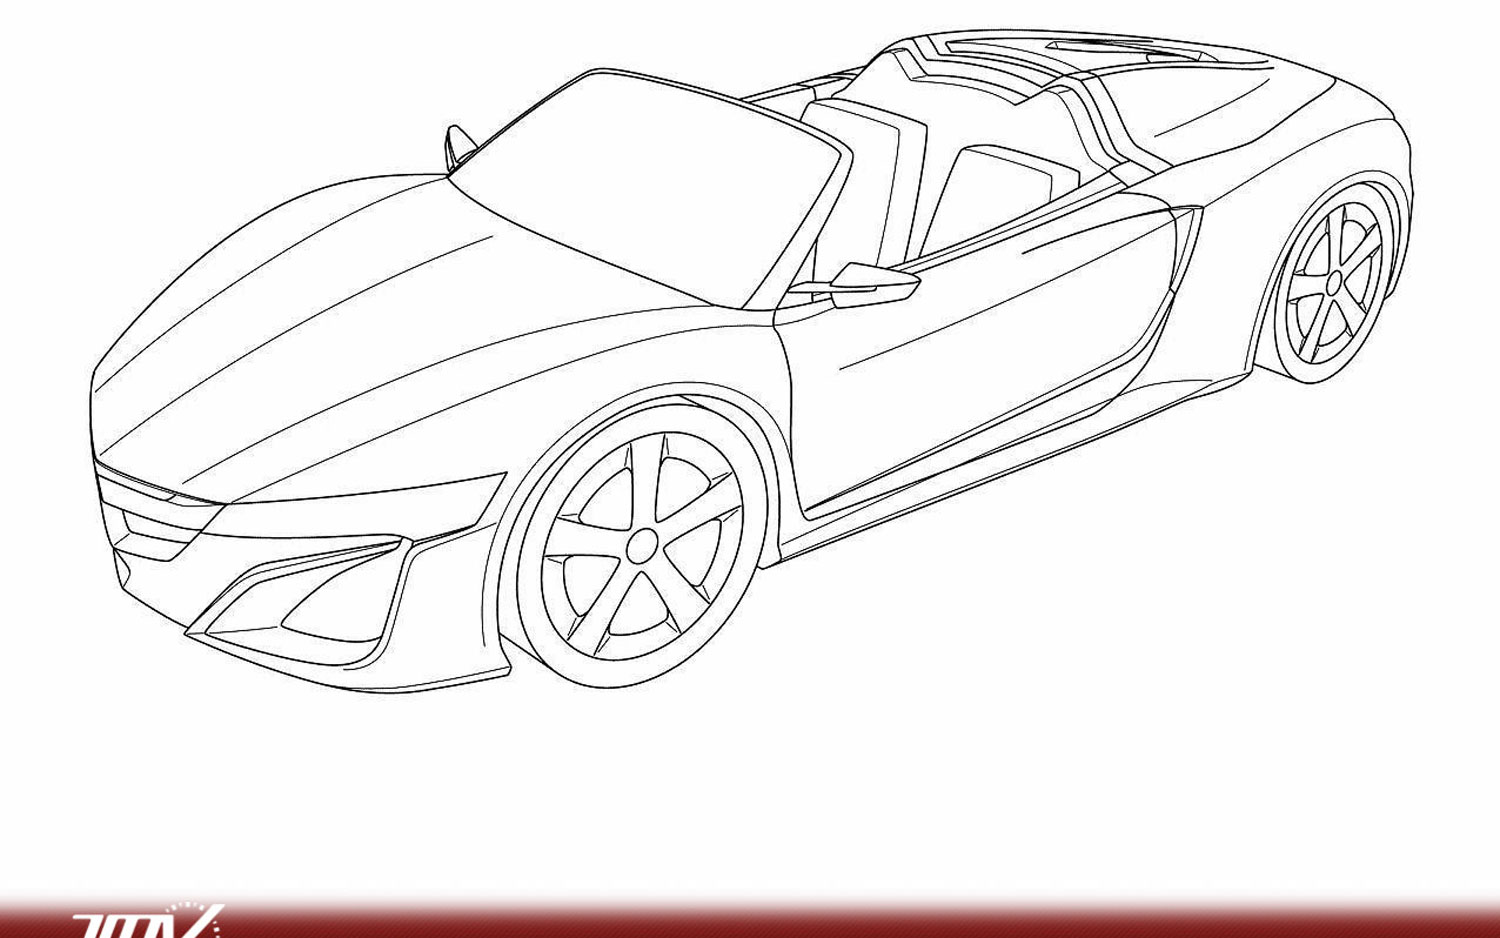 Acura NSX Spider Design Revealed In Patent Application?